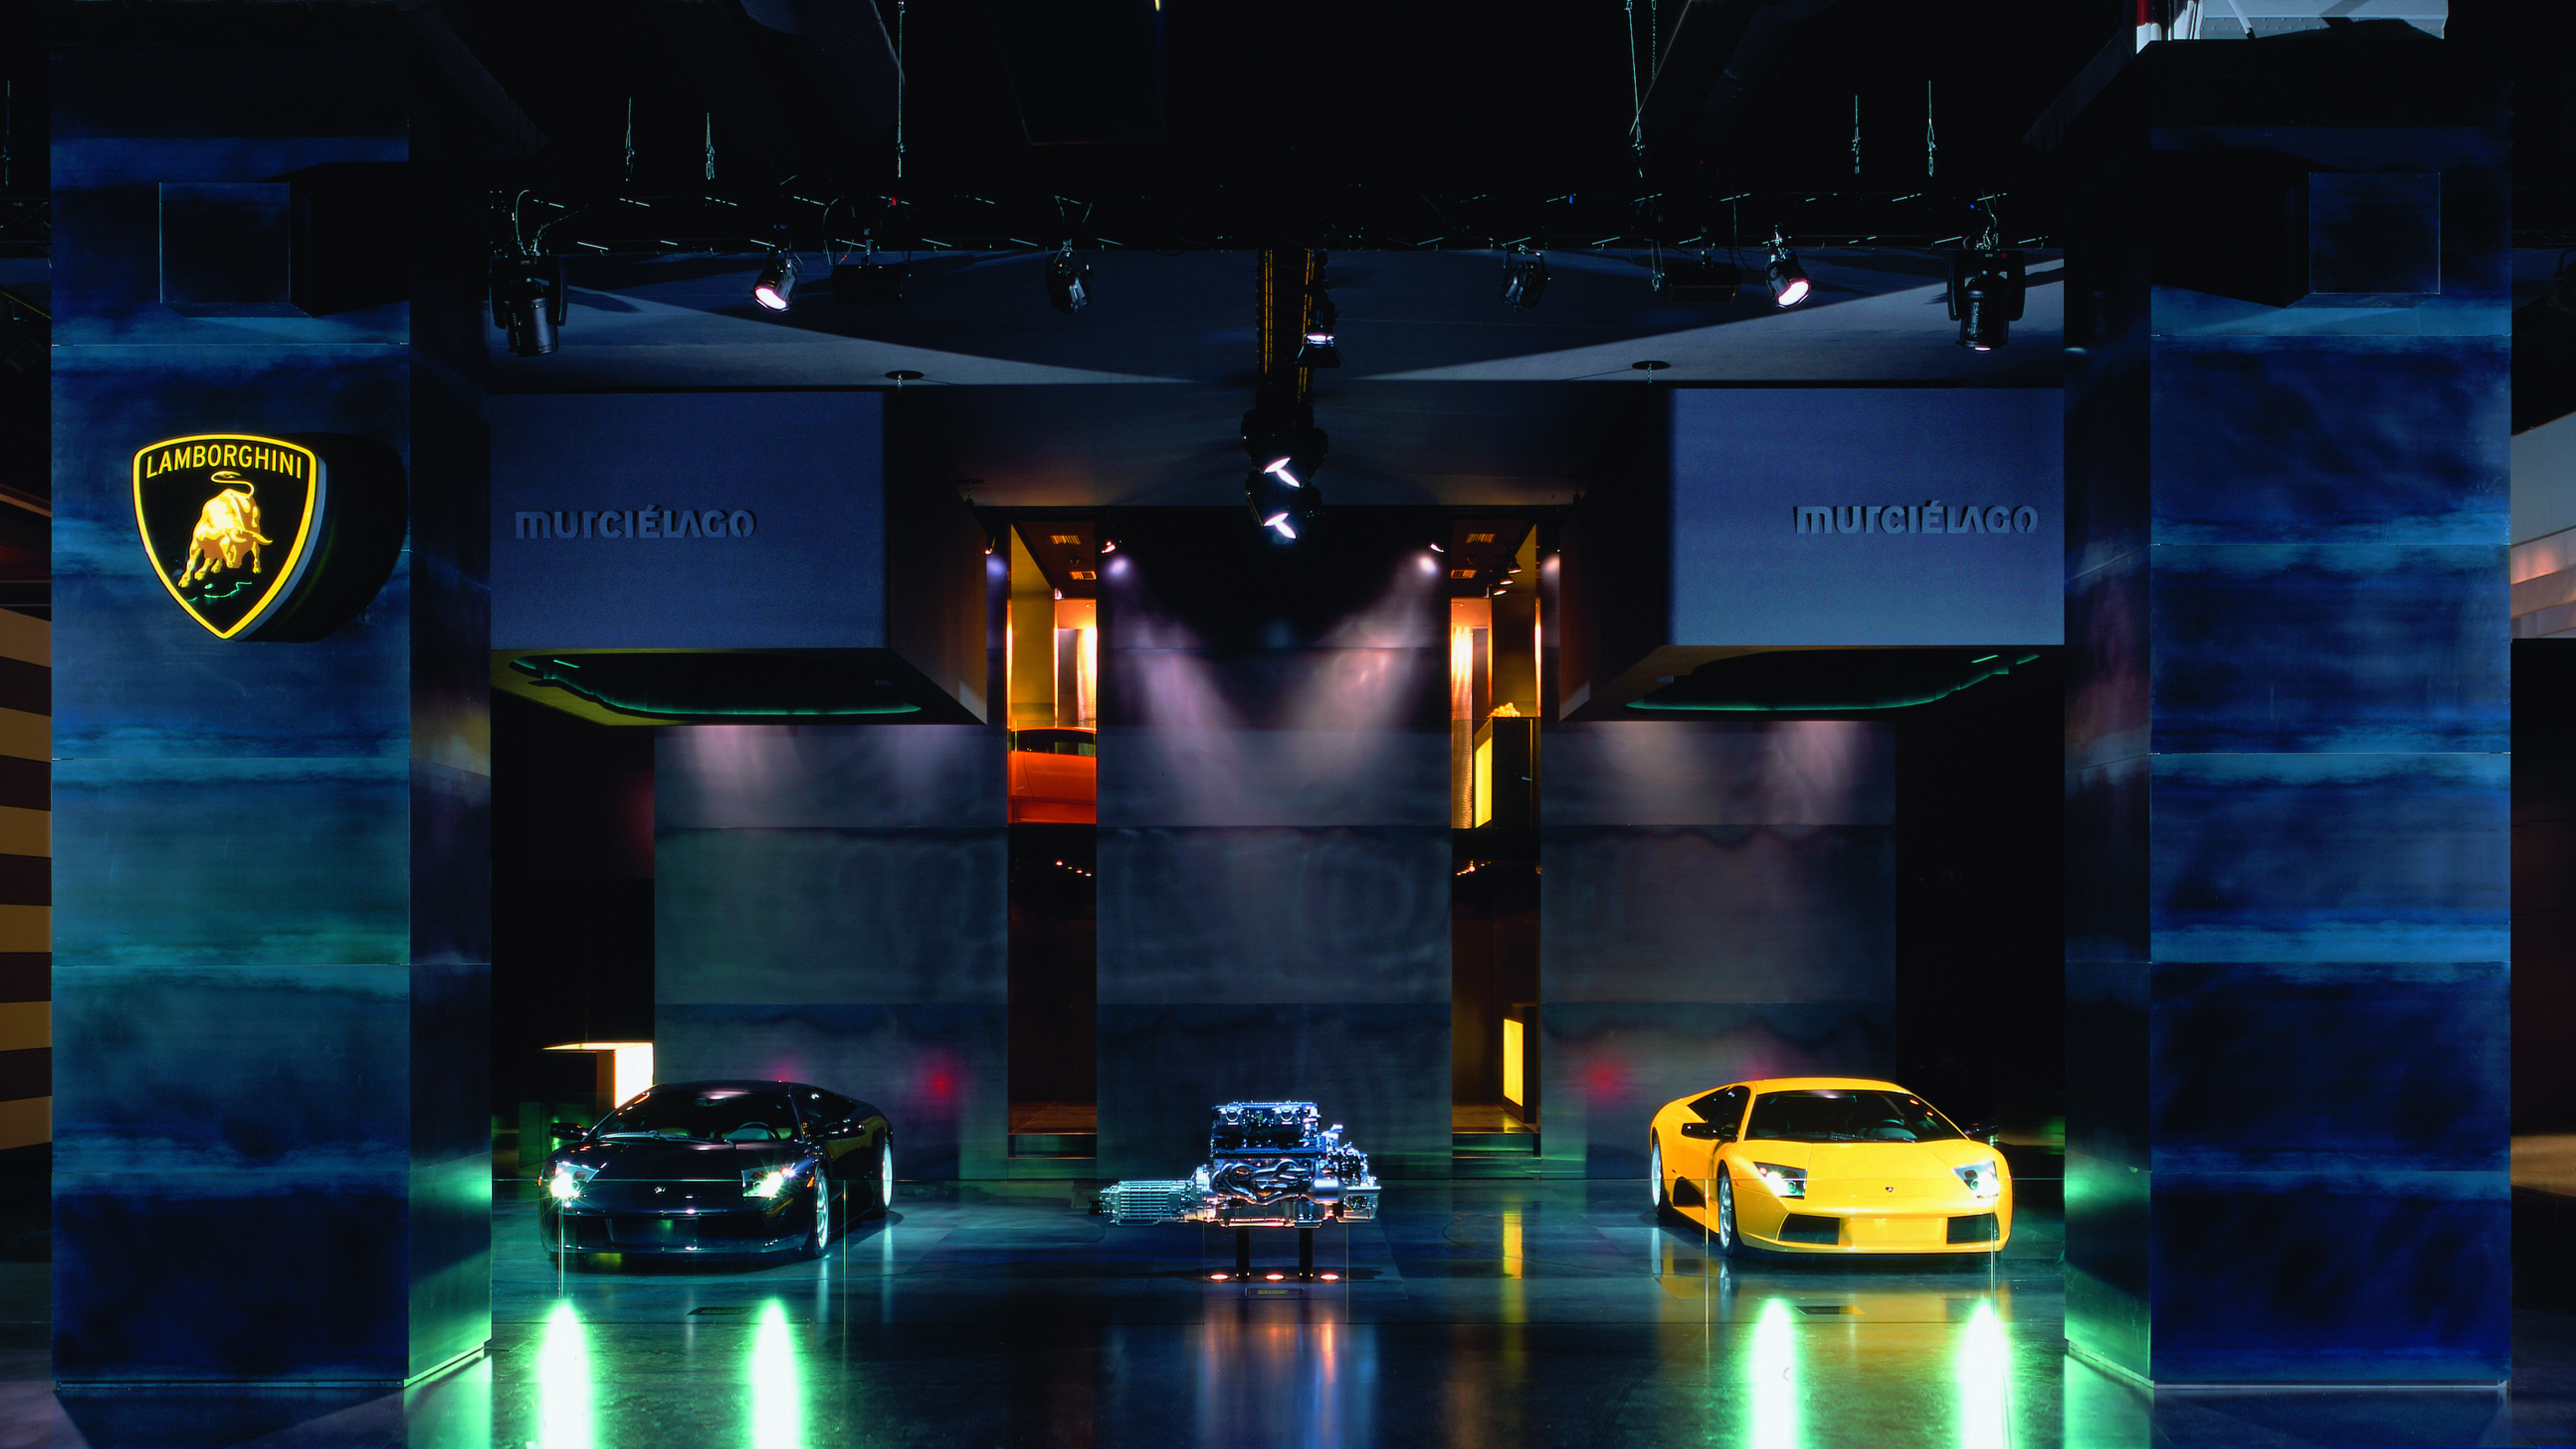 A Lamborghini engine is staged at an exhibition stand between a black and a yellow Murcielago.